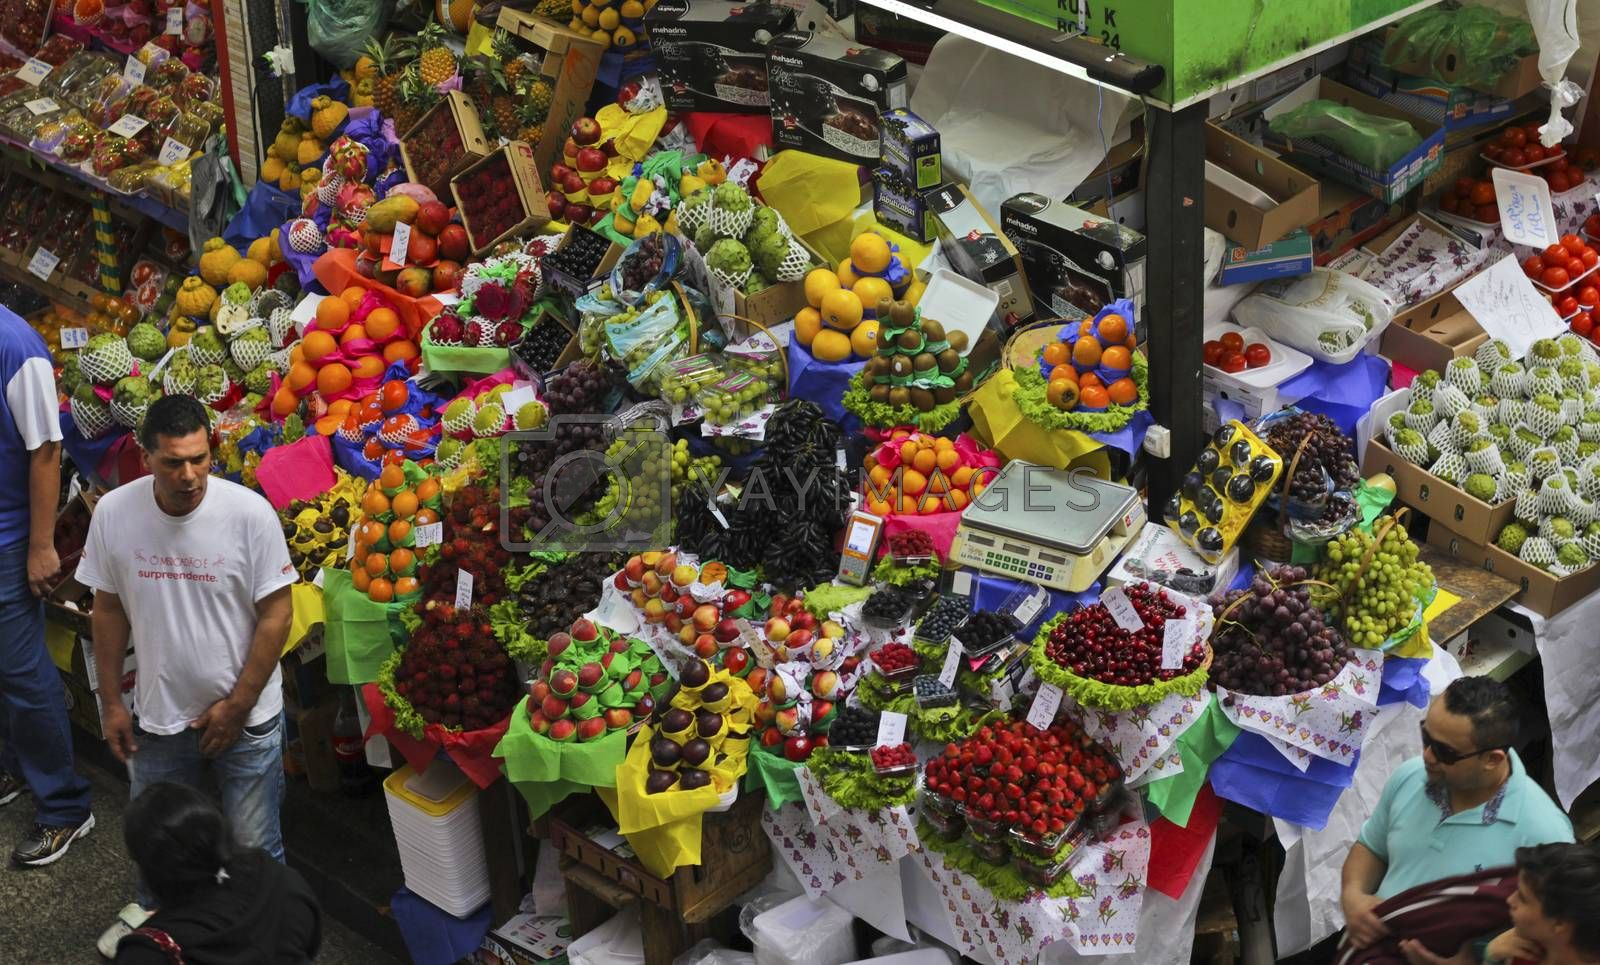 SAO PAULO/BRAZIL - MAY 9: An unidentified men a fruit stand in Central Market of Sao Paulo on May 09, 2015. This landmark is a destination for tourists and locals.